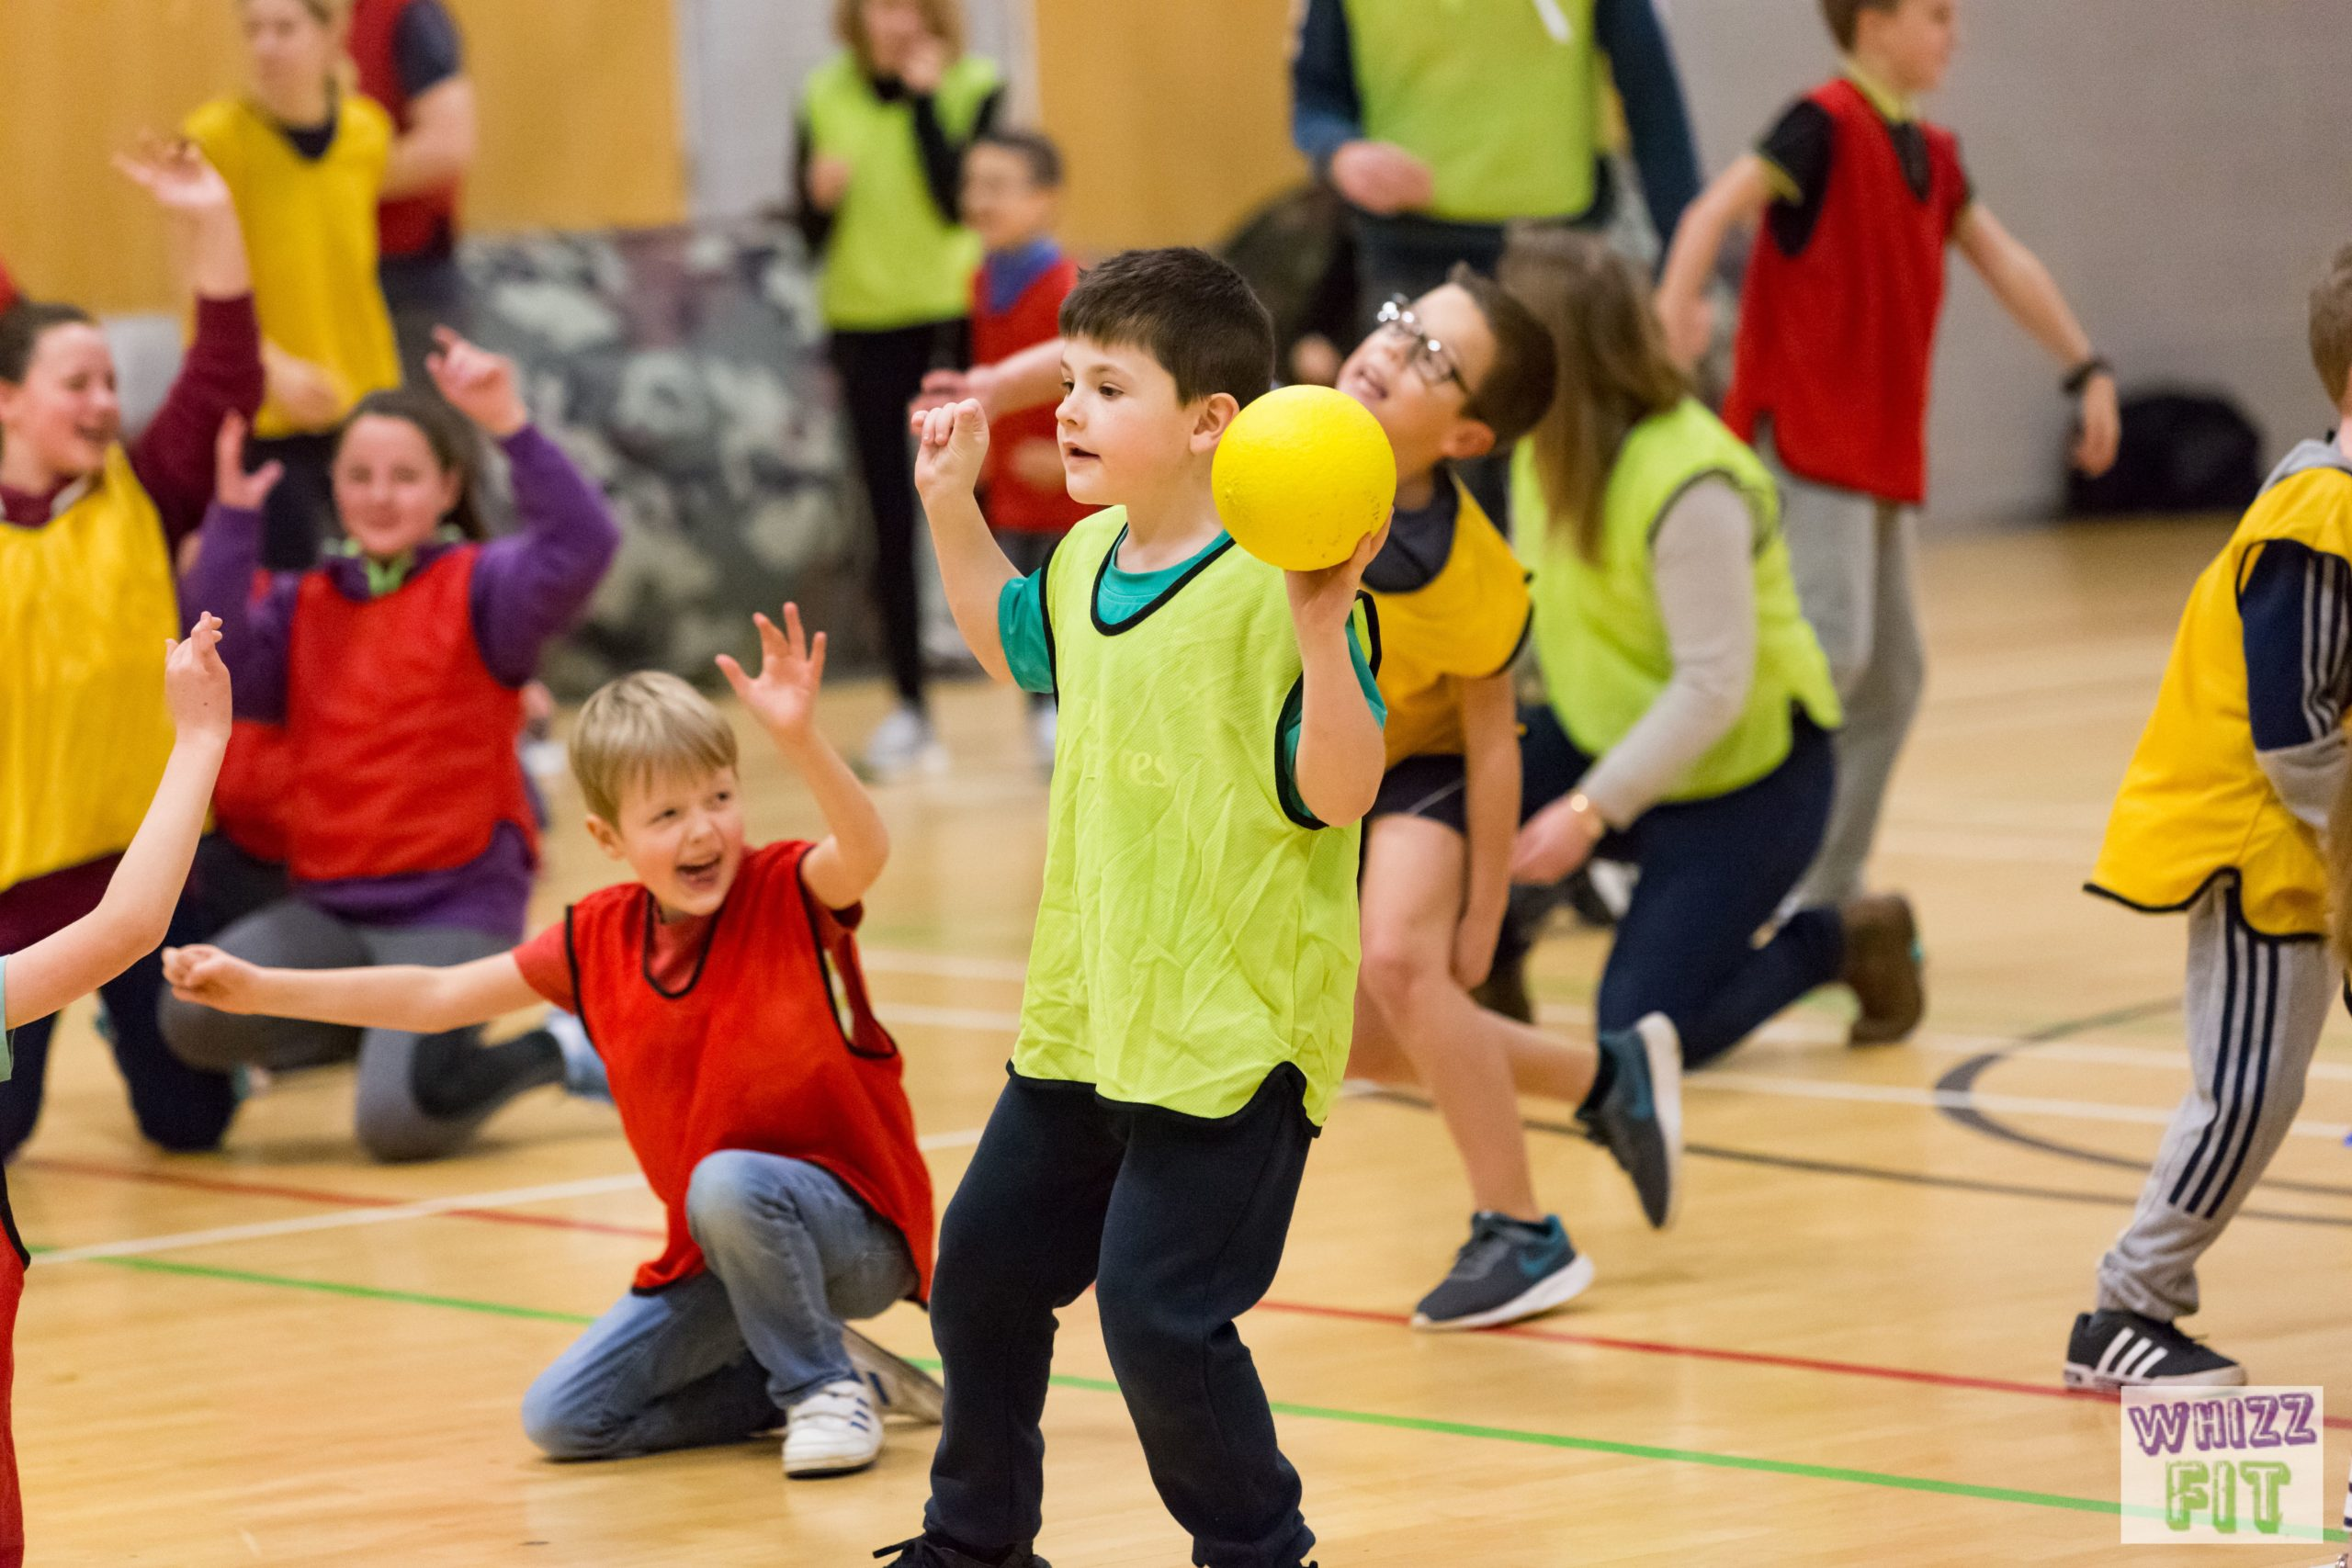 Dodgeball Party at Esher Church School